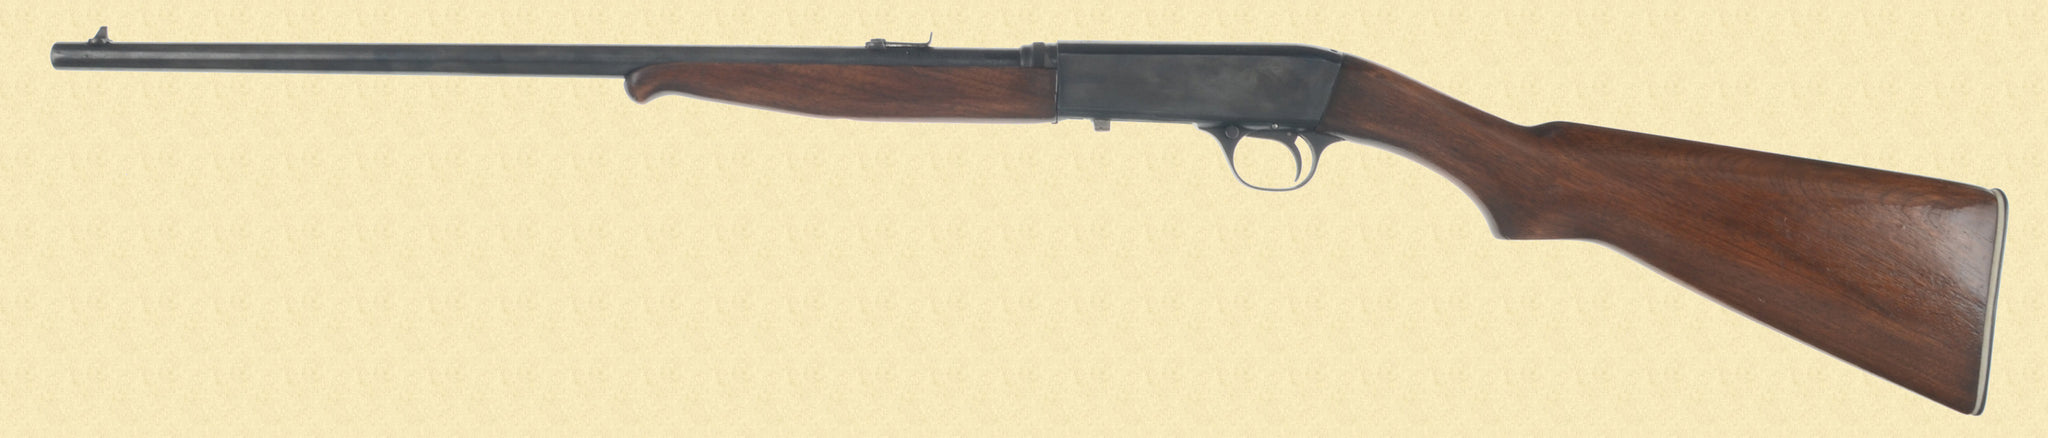 REMINGTON MODEL 24